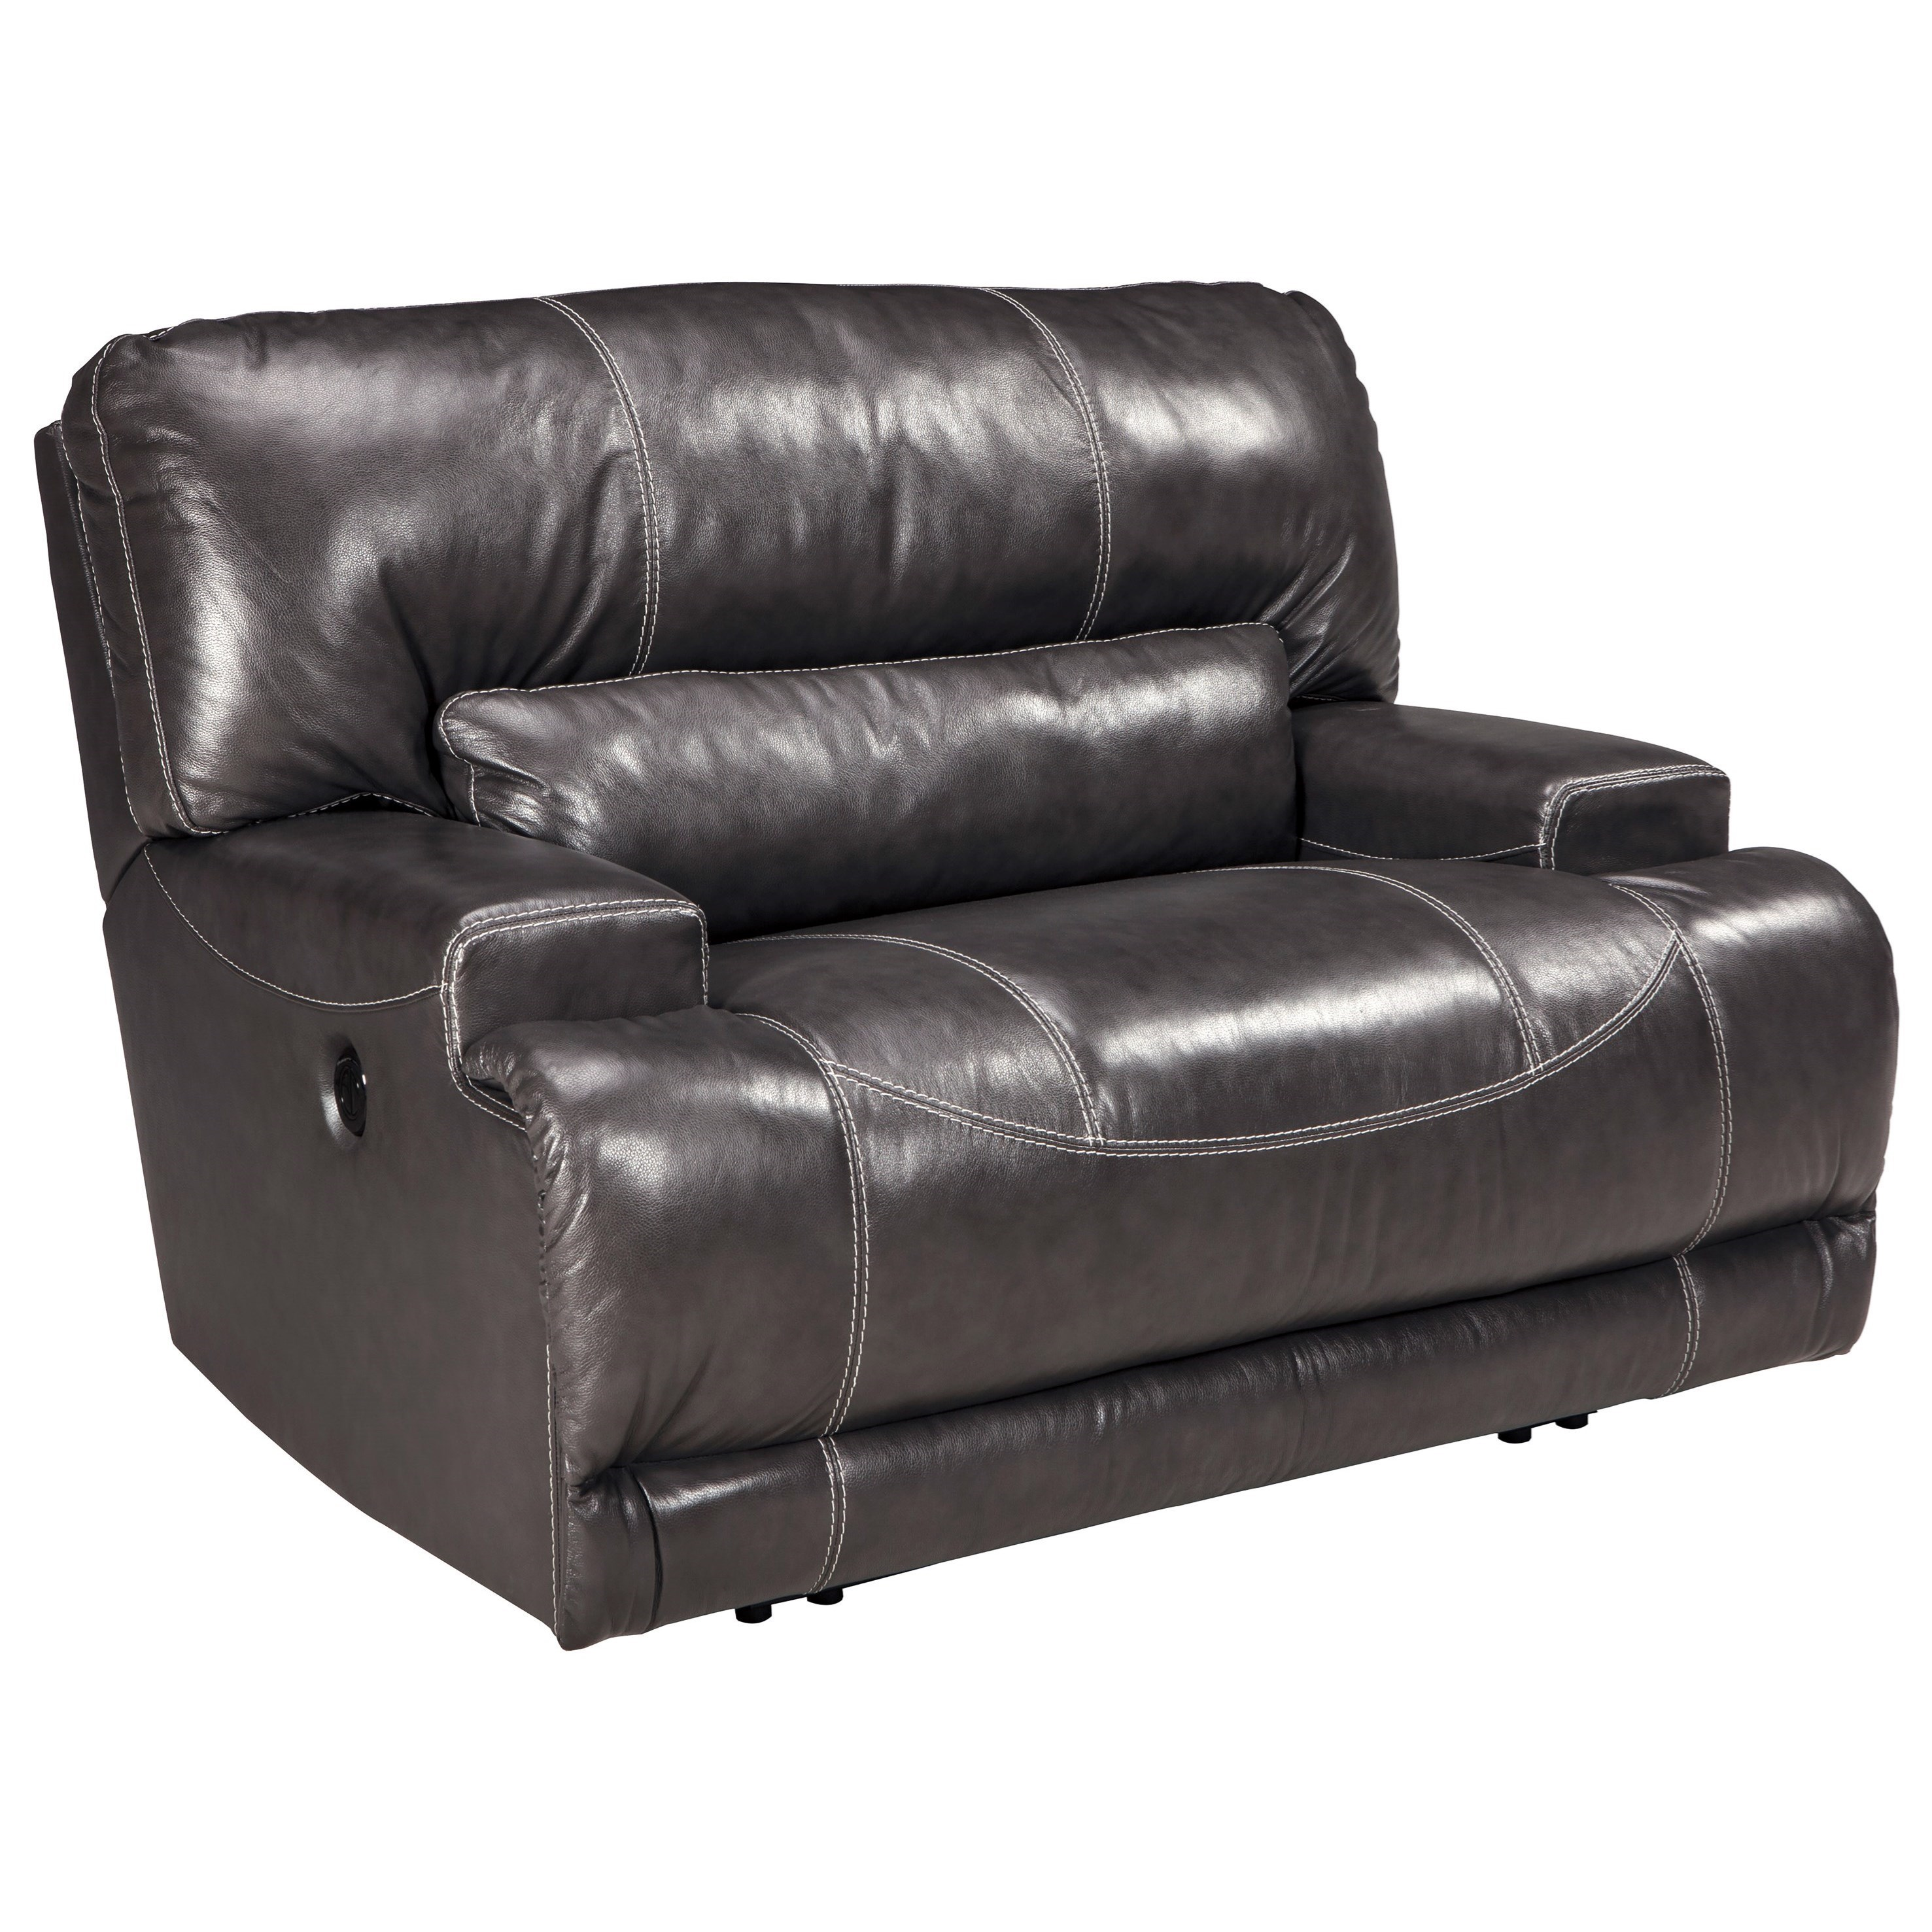 Signature Design by Ashley McCaskill Contemporary Leather Match Wide Seat Power Recliner - Furniture and ApplianceMart - Three Way Recliners  sc 1 st  Furniture and ApplianceMart & Signature Design by Ashley McCaskill Contemporary Leather Match ... islam-shia.org